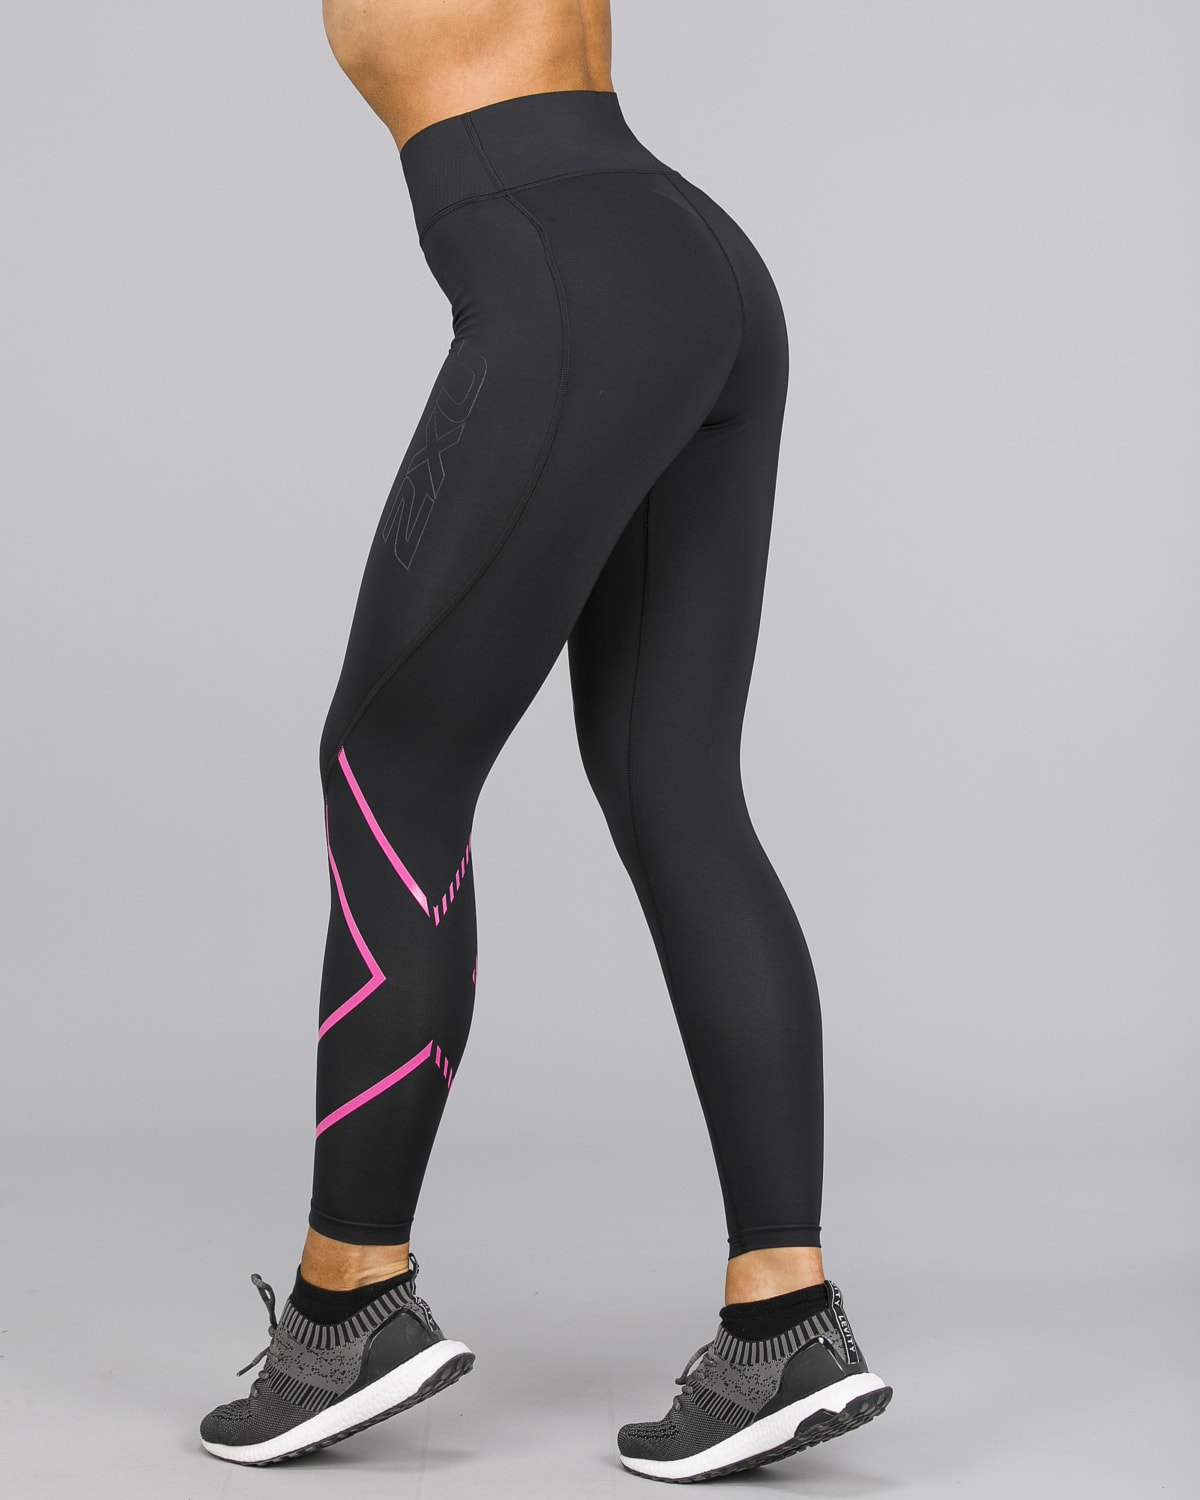 2XU – Bonded Mid-Rise Compression Tights – Black:Fracture Fuschia f